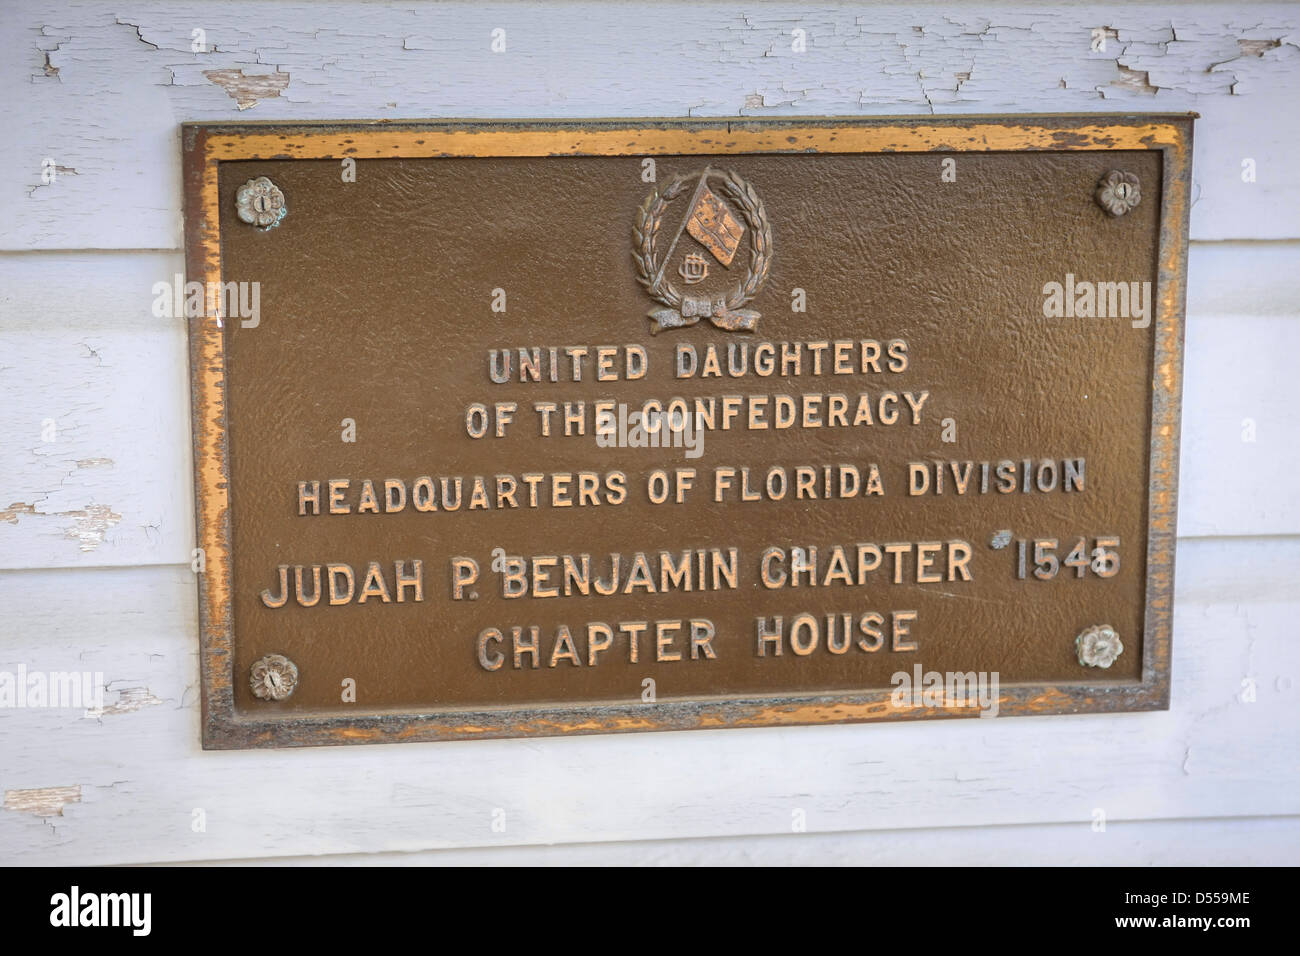 Plaque on the wall of the HQ of the Daughters of the Confederacy Florida Divison at Ellenton - Stock Image